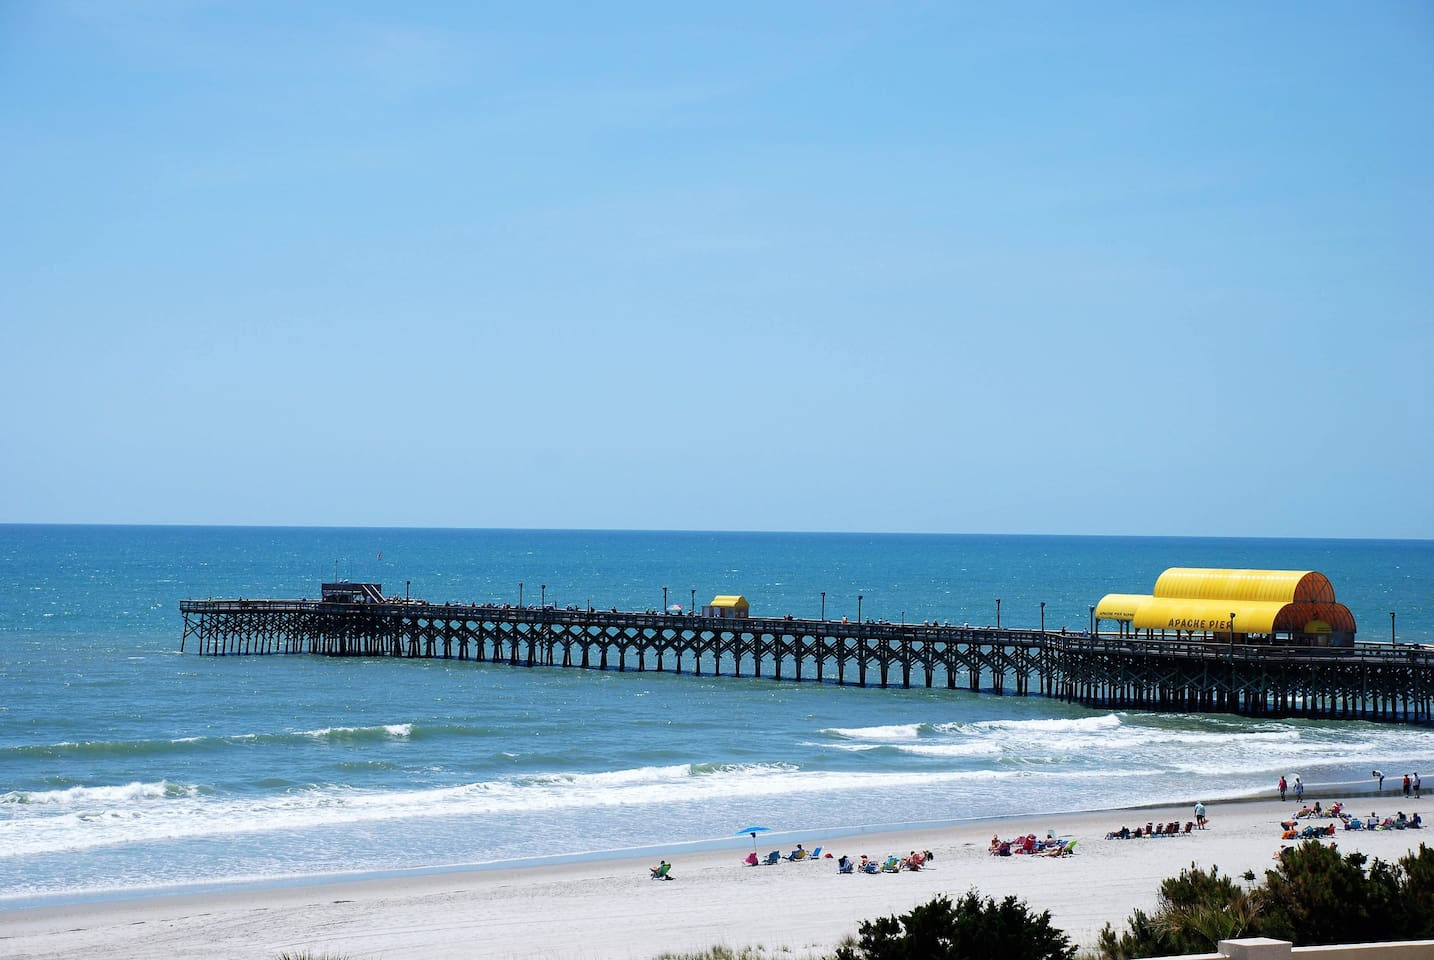 Direct view of Apache Pier.